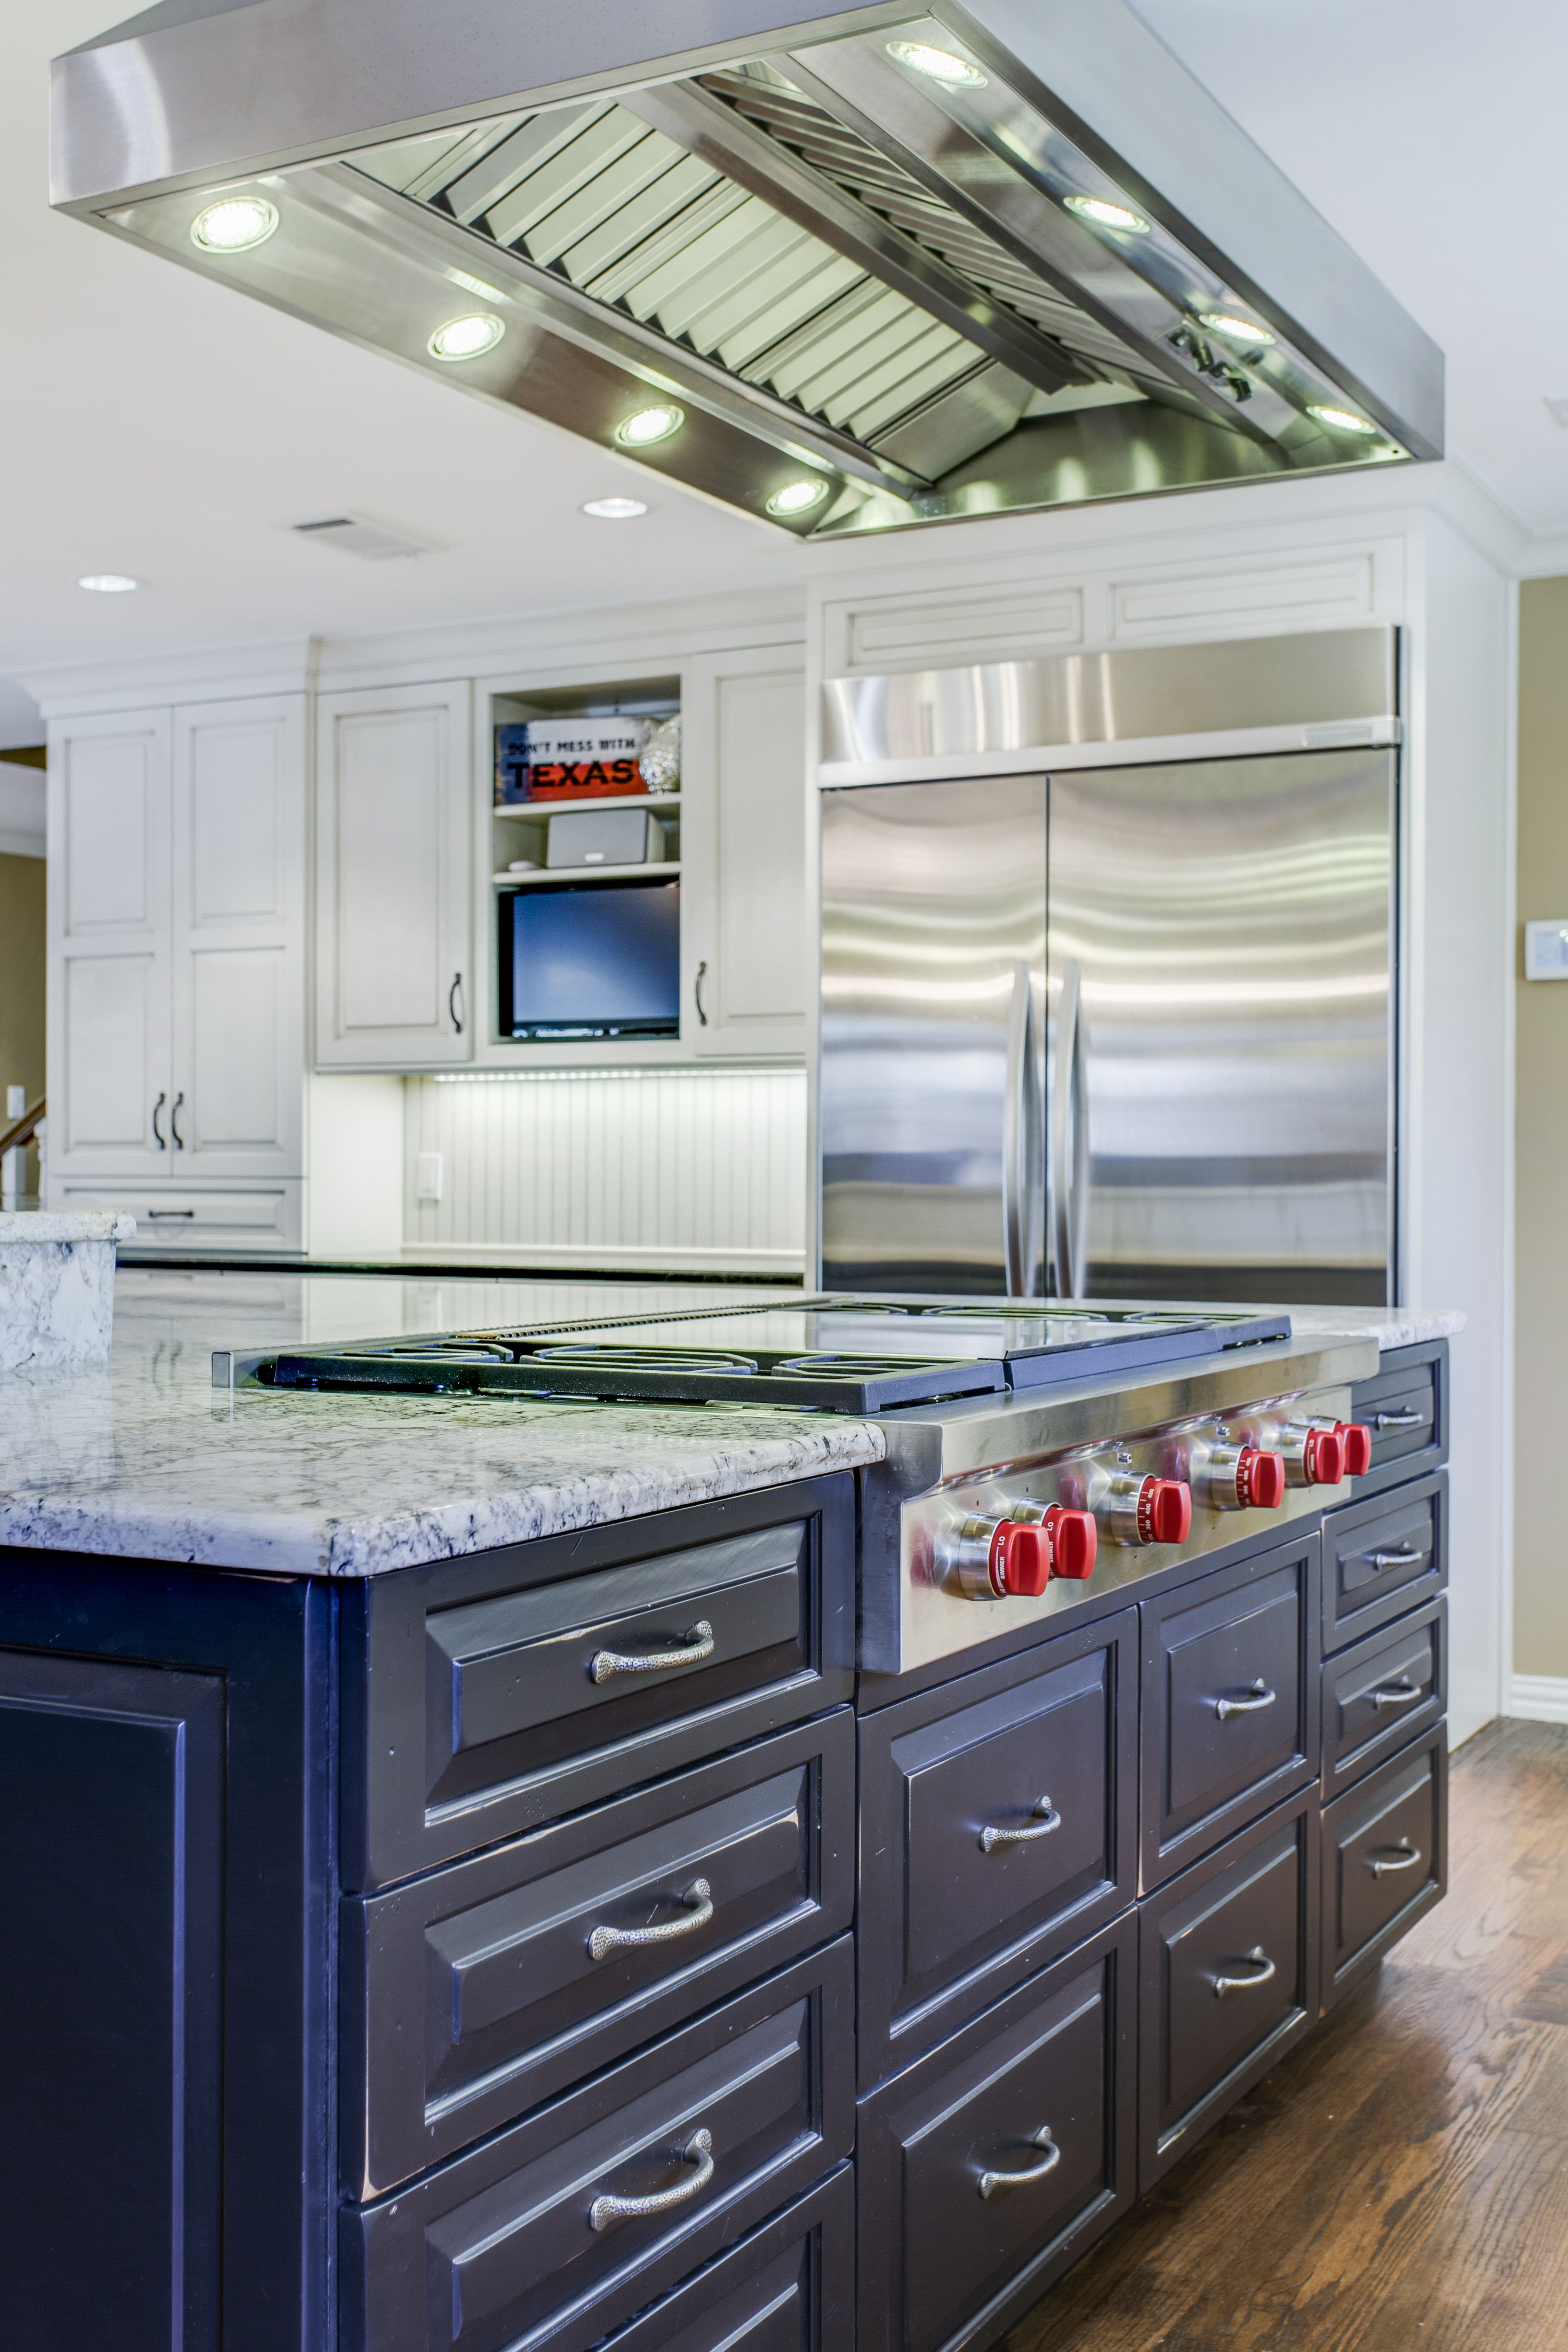 Wwwoods Cabinets Soft White Perimeter With Slate Highlights With Antiqued Black Kitchen Vent Hood Kitchen Vent Kitchen Island Vent